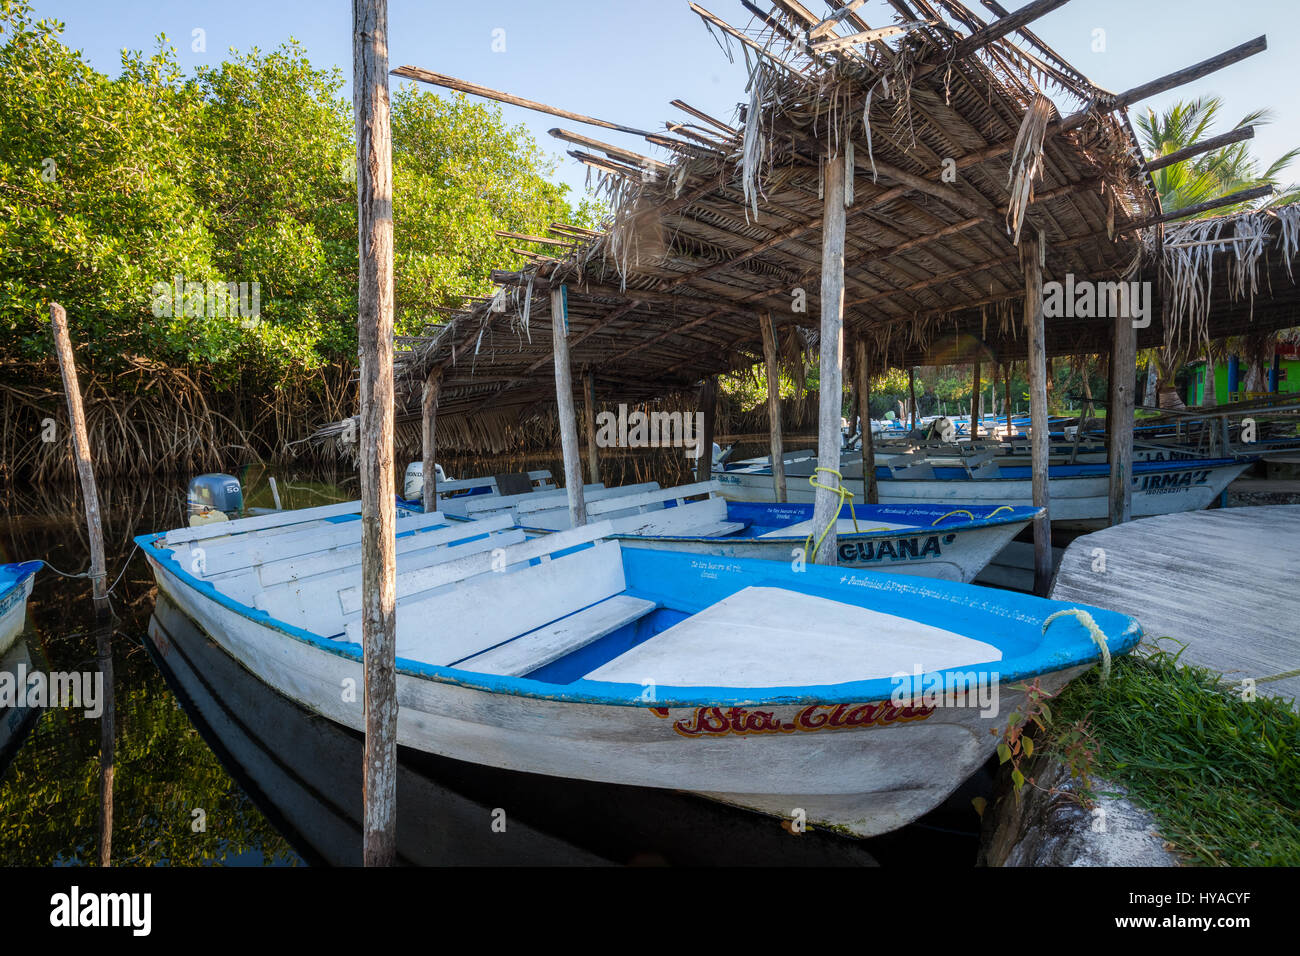 Boats at the docks of the Tovara Natural Reserve in San Blas, Mexico. - Stock Image